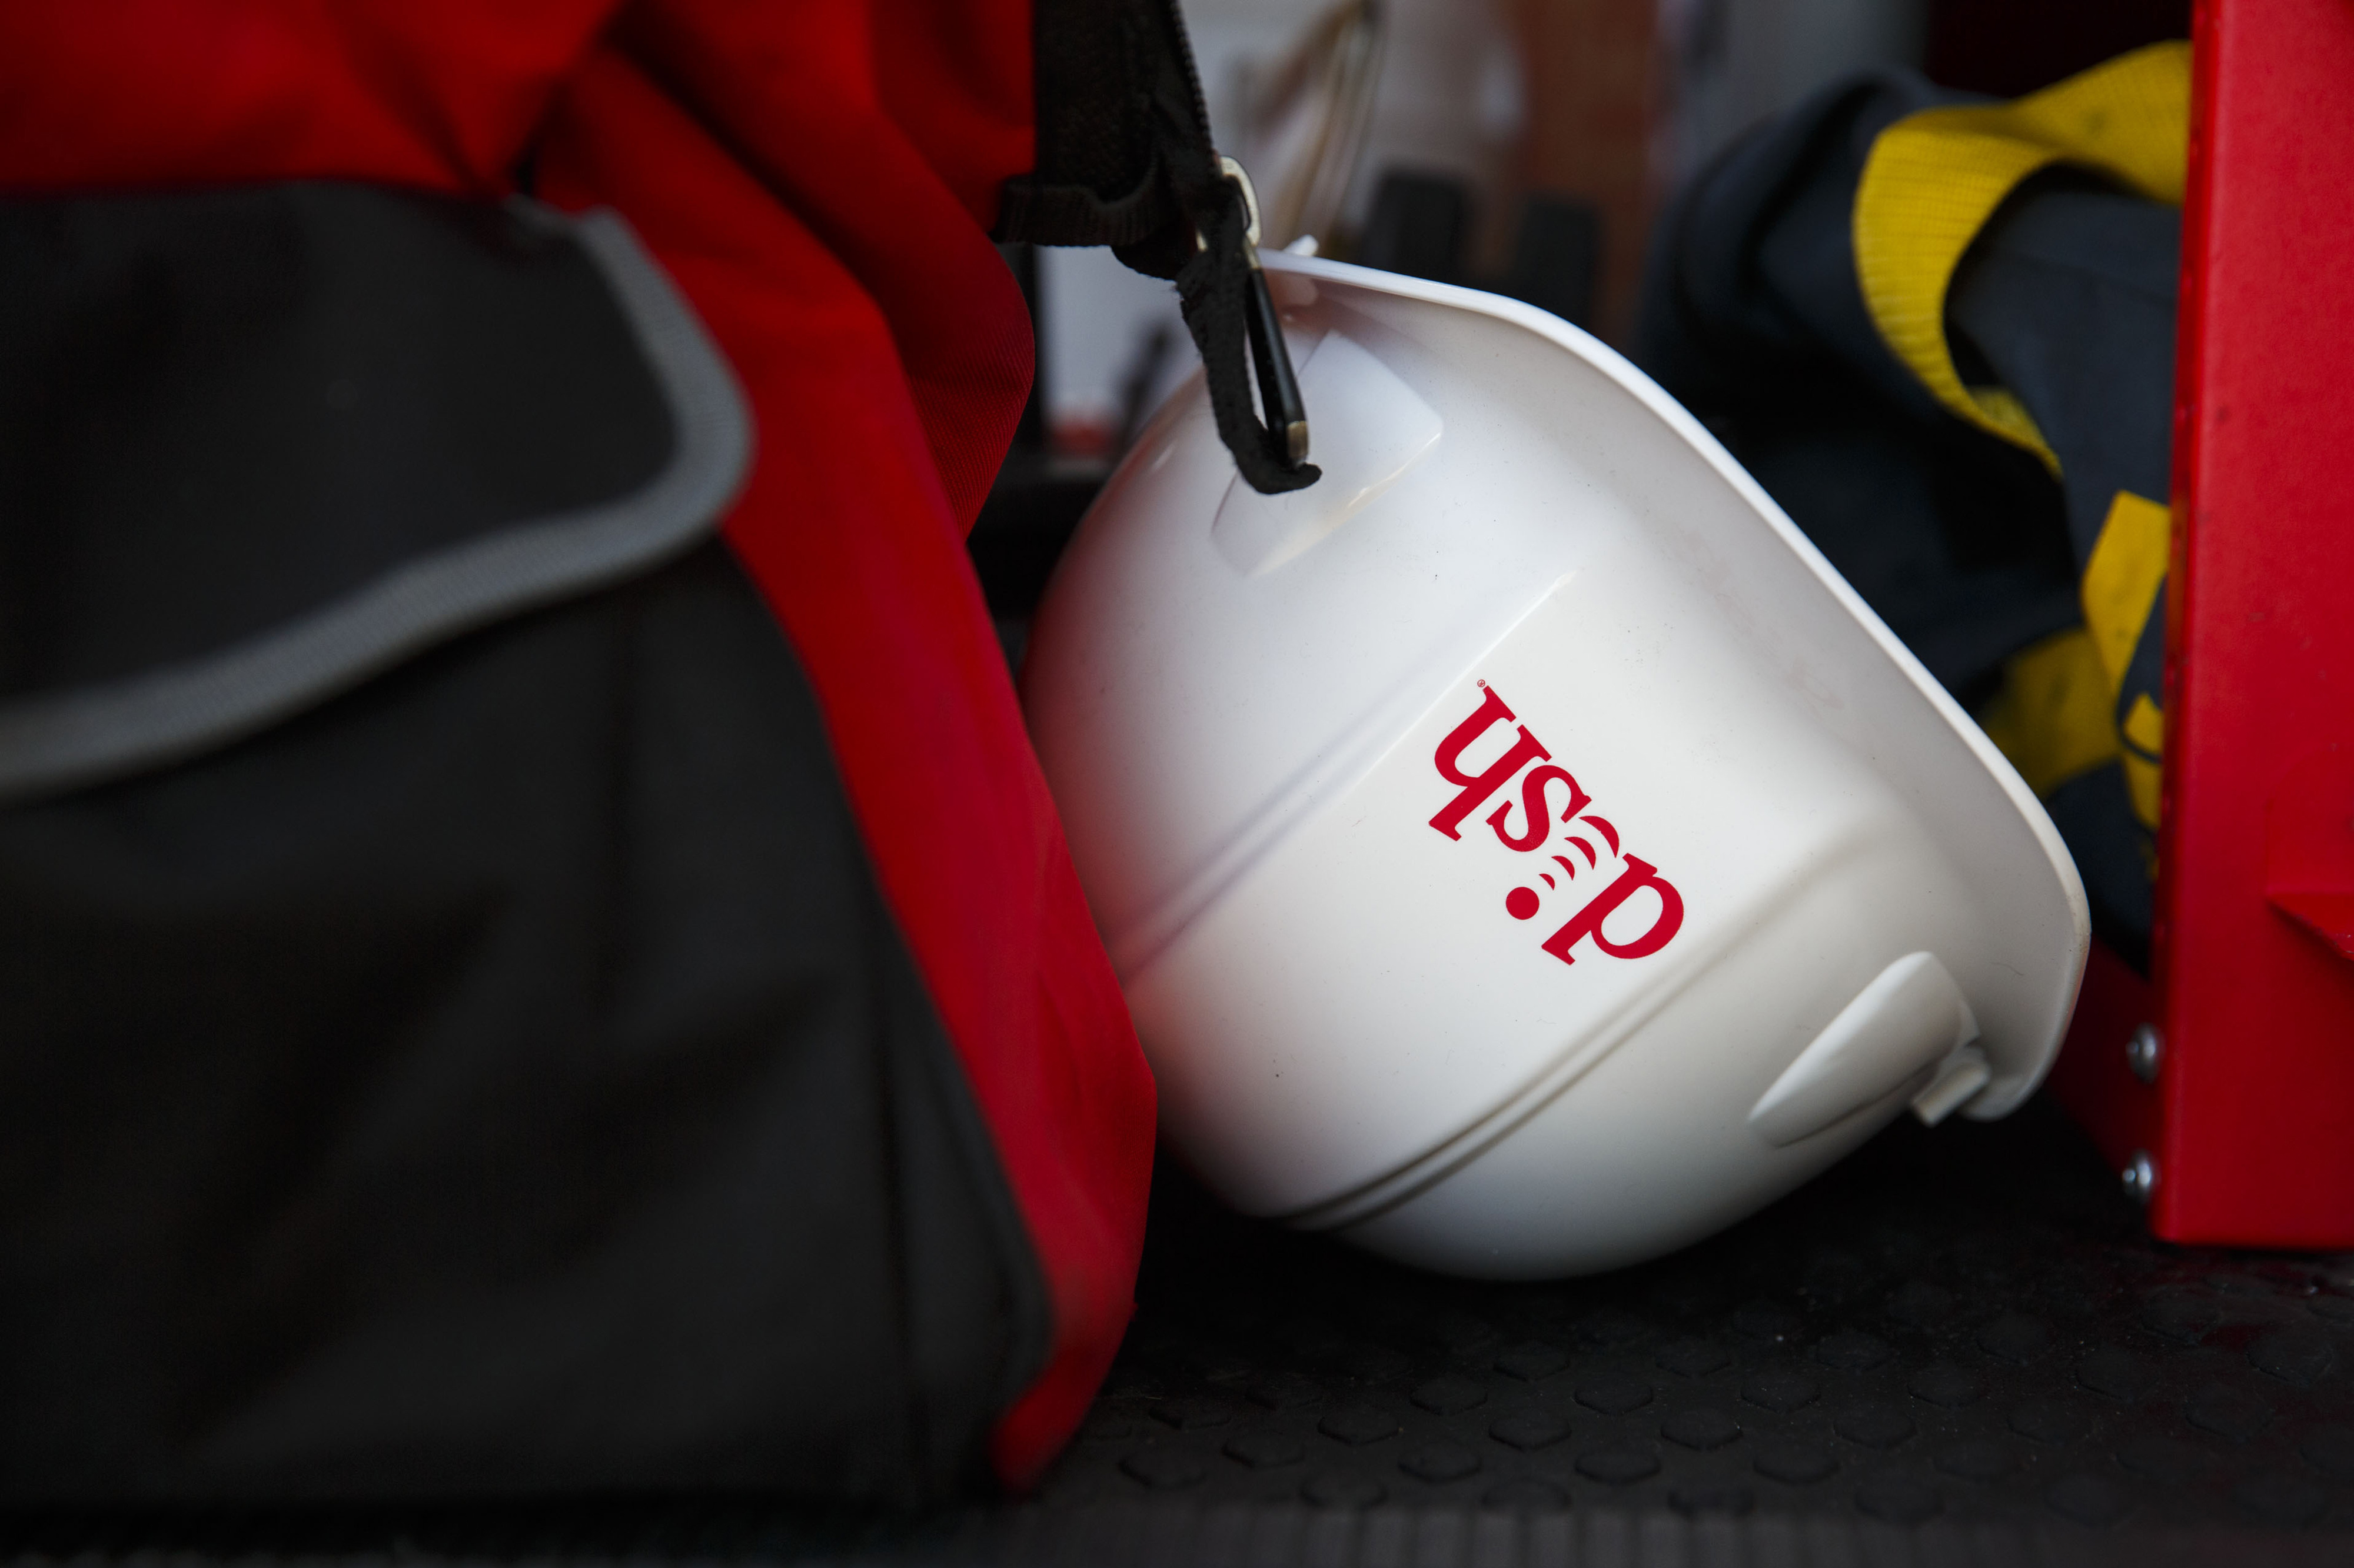 The Dish Network Corp. logo is displayed on a hard hat during a installation in Paramount, California, U.S., on Tuesday, November 3, 2015. Photographer: Patrick T. Fallon/Bloomberg